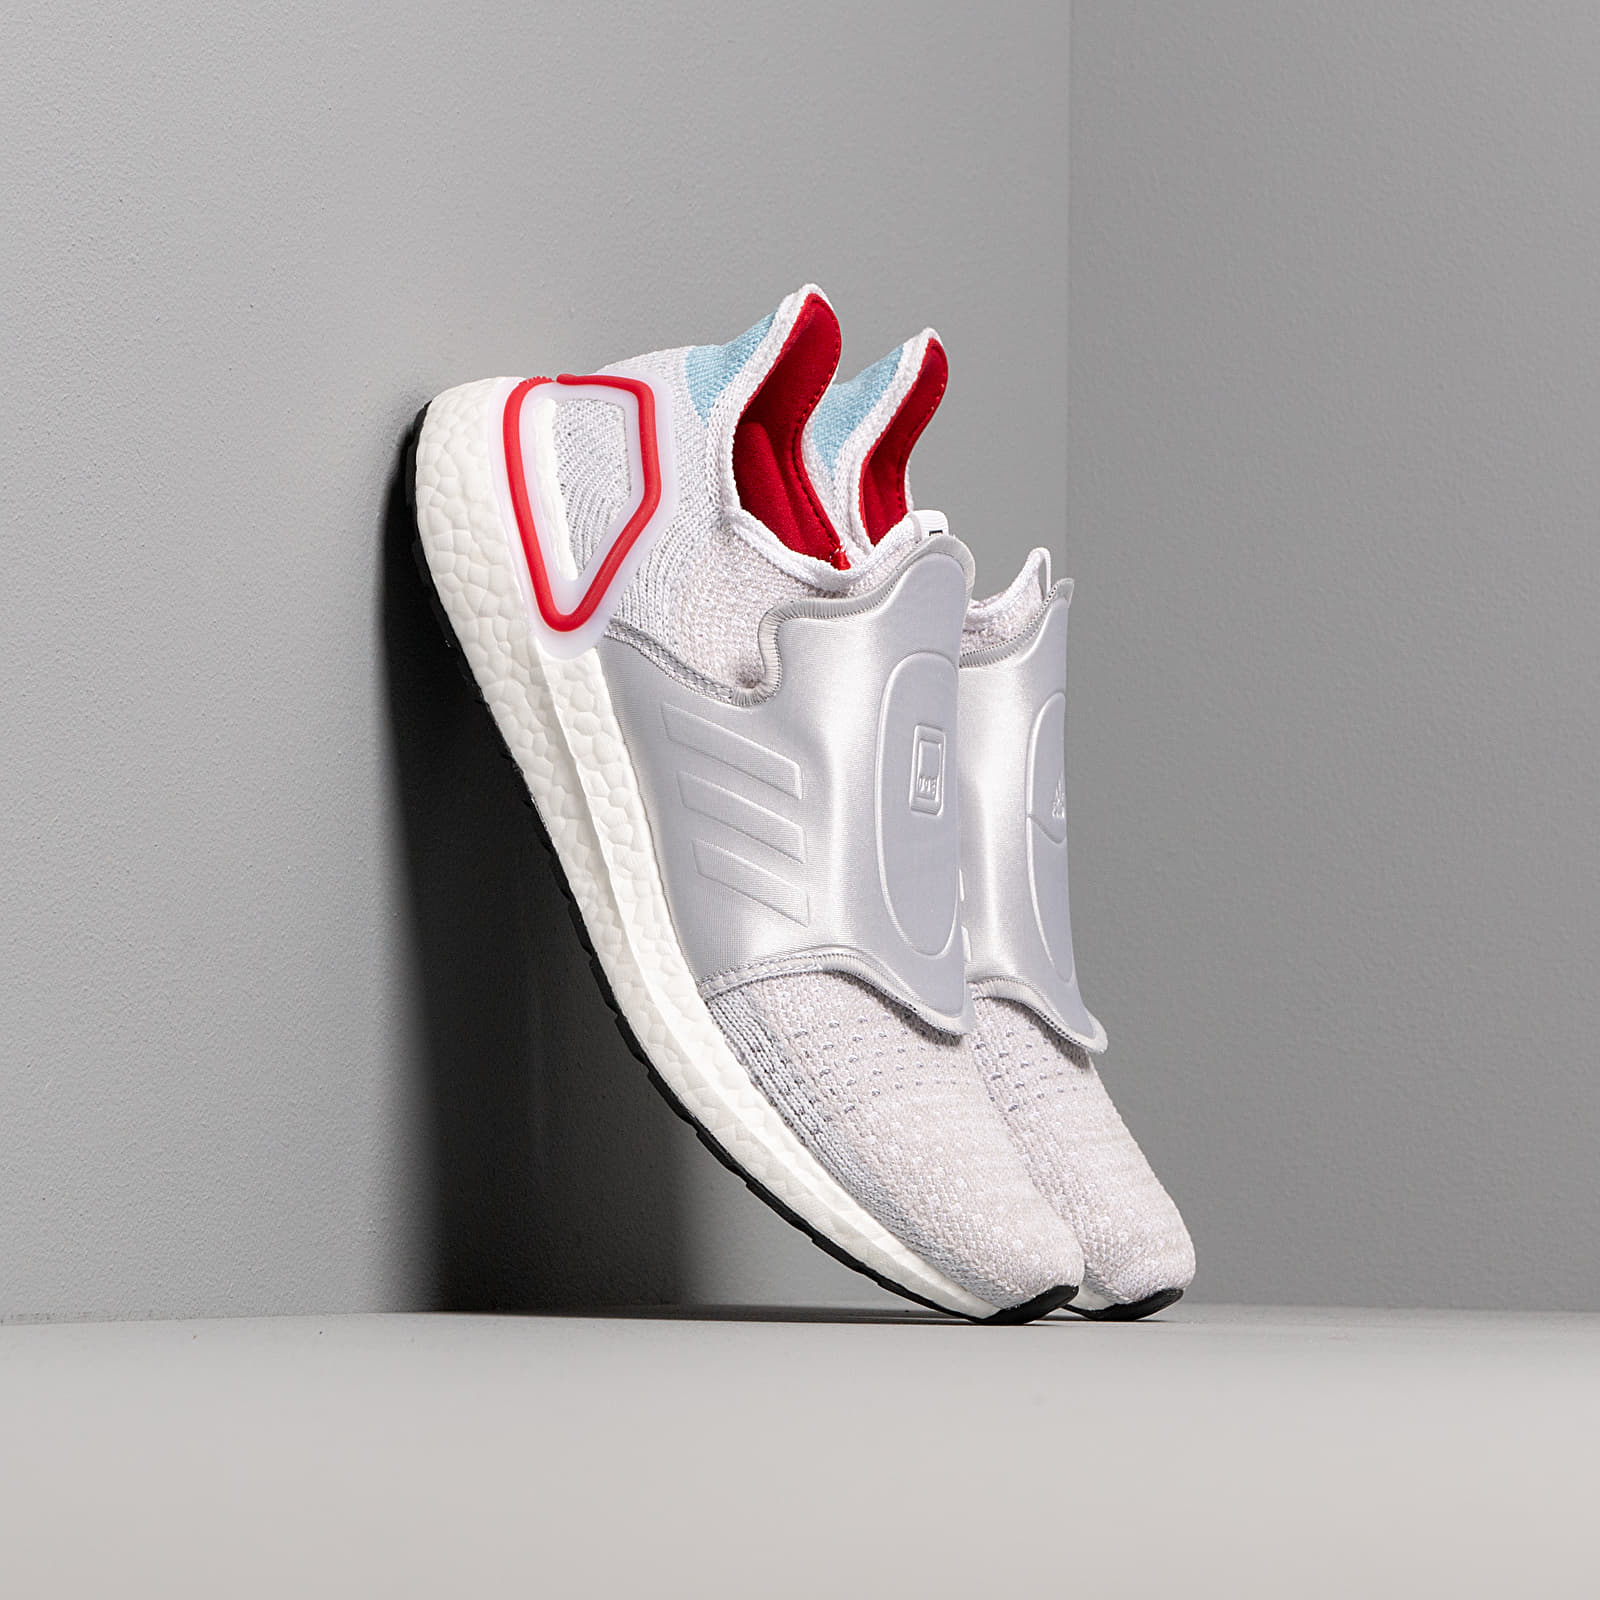 Buty męskie adidas Consortium x DOE UltraBOOST 19 Core White/ Core White/ Power Red